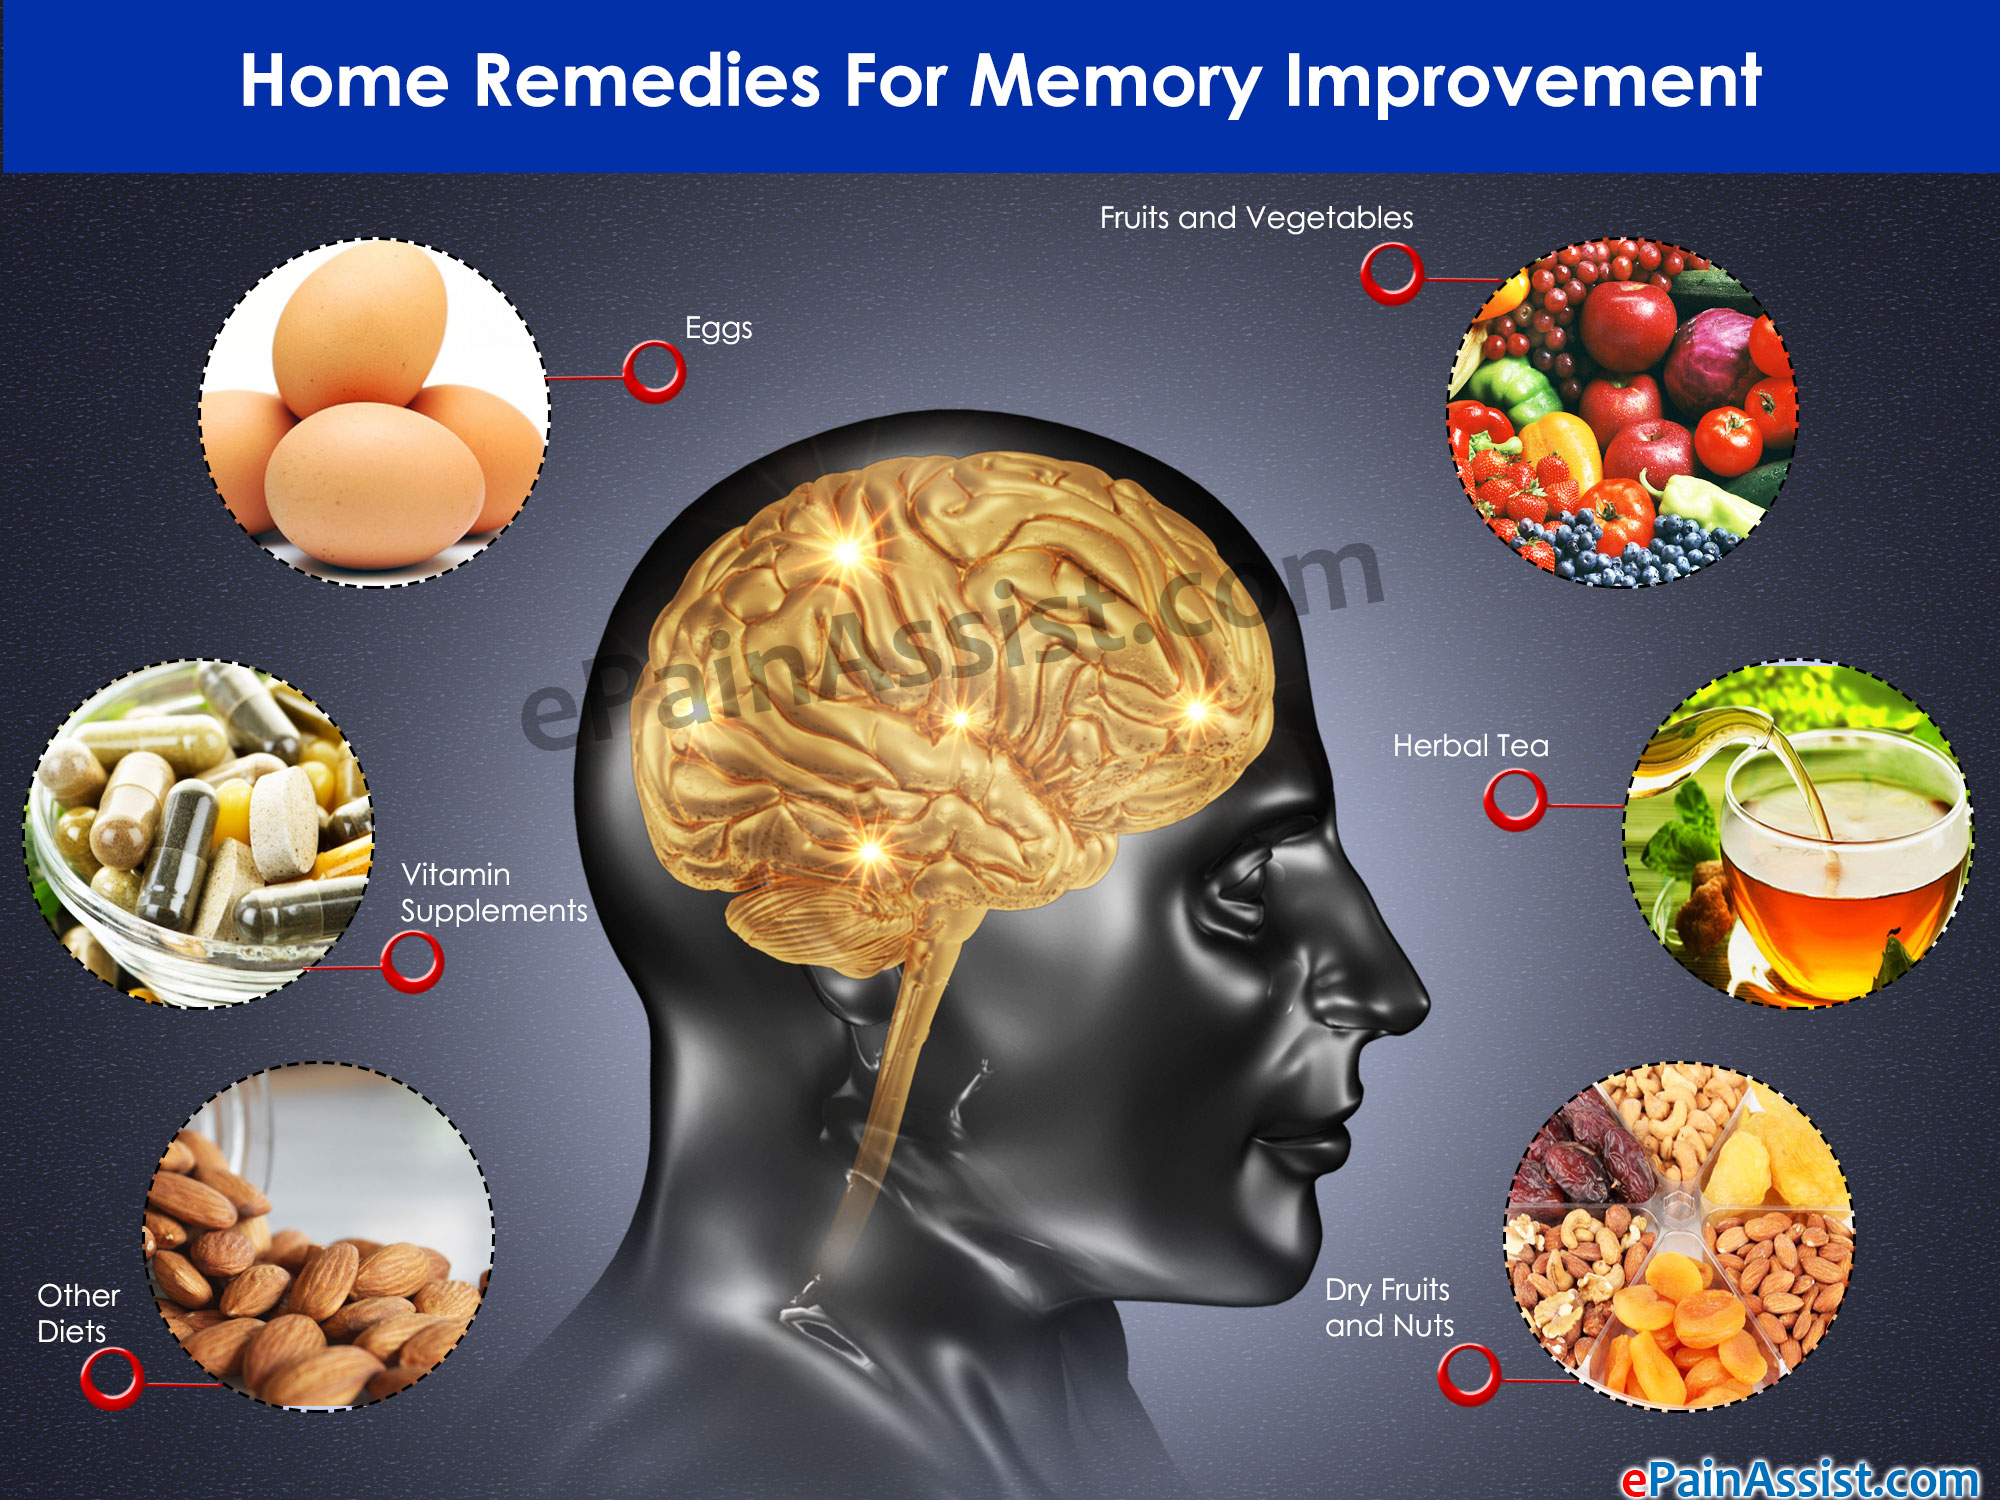 Home Remedies For Memory Improvement|Diet|Exercise|Tips For Better Memory